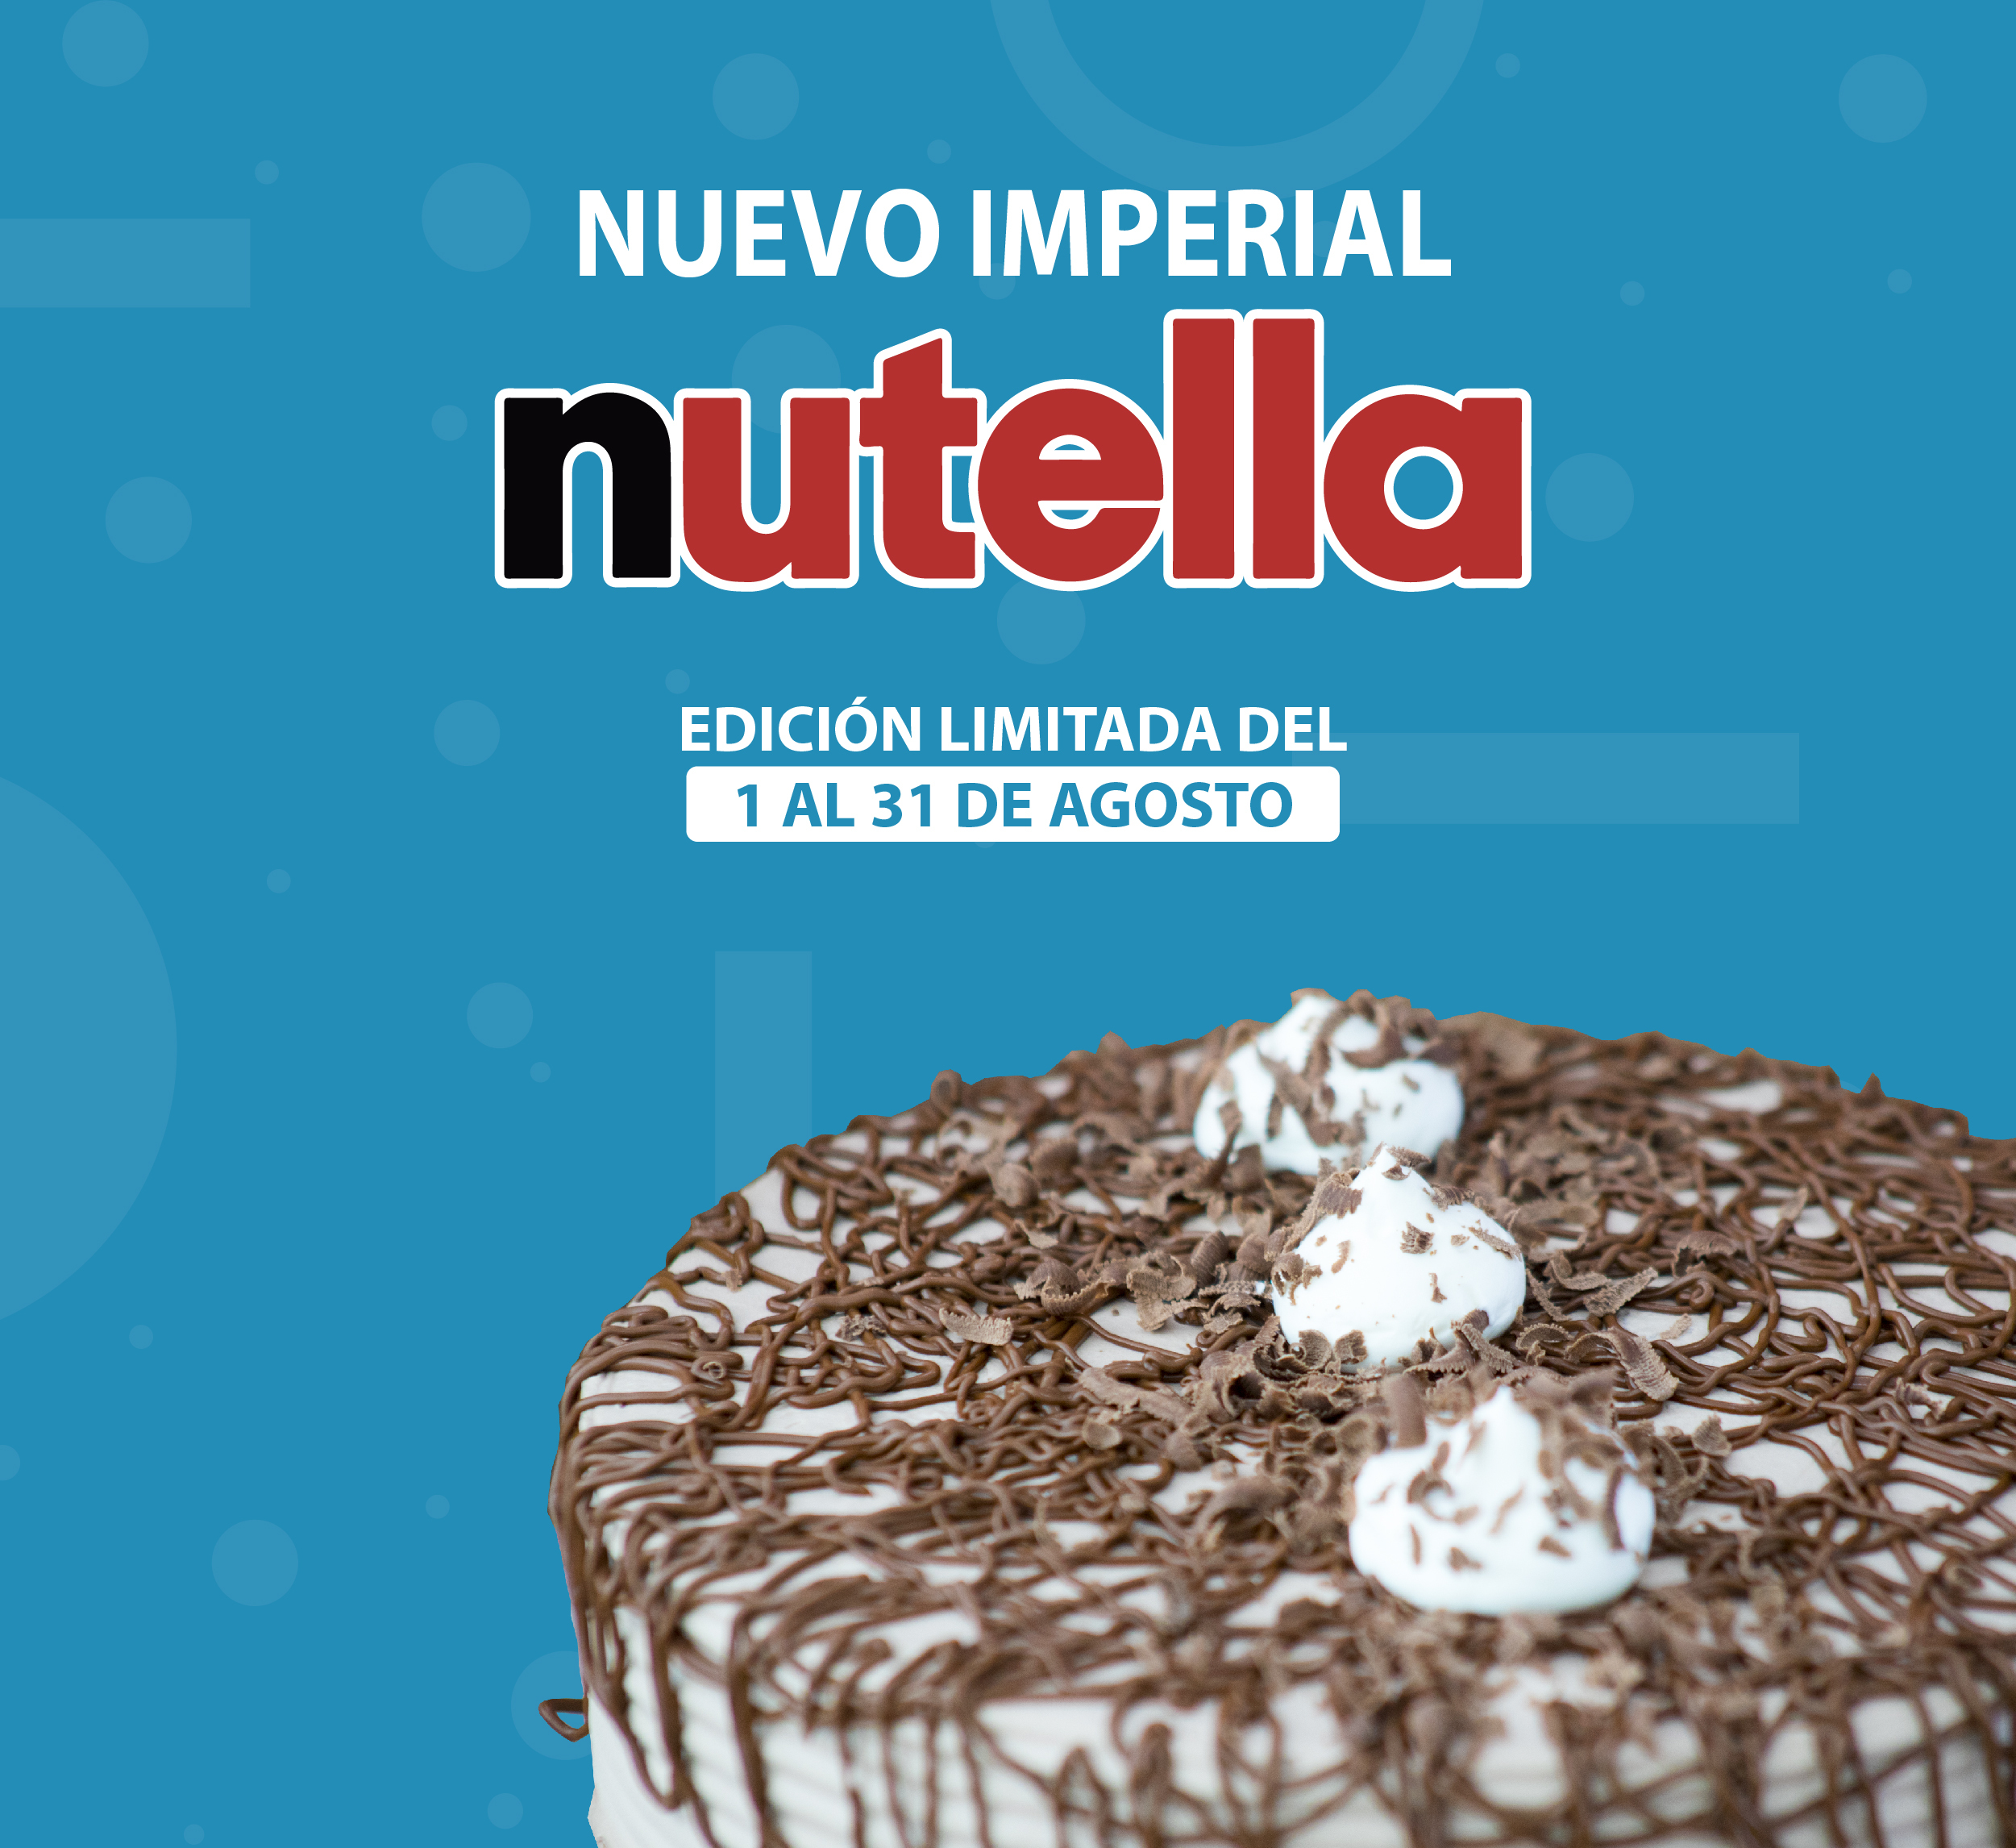 Imperial Nutella